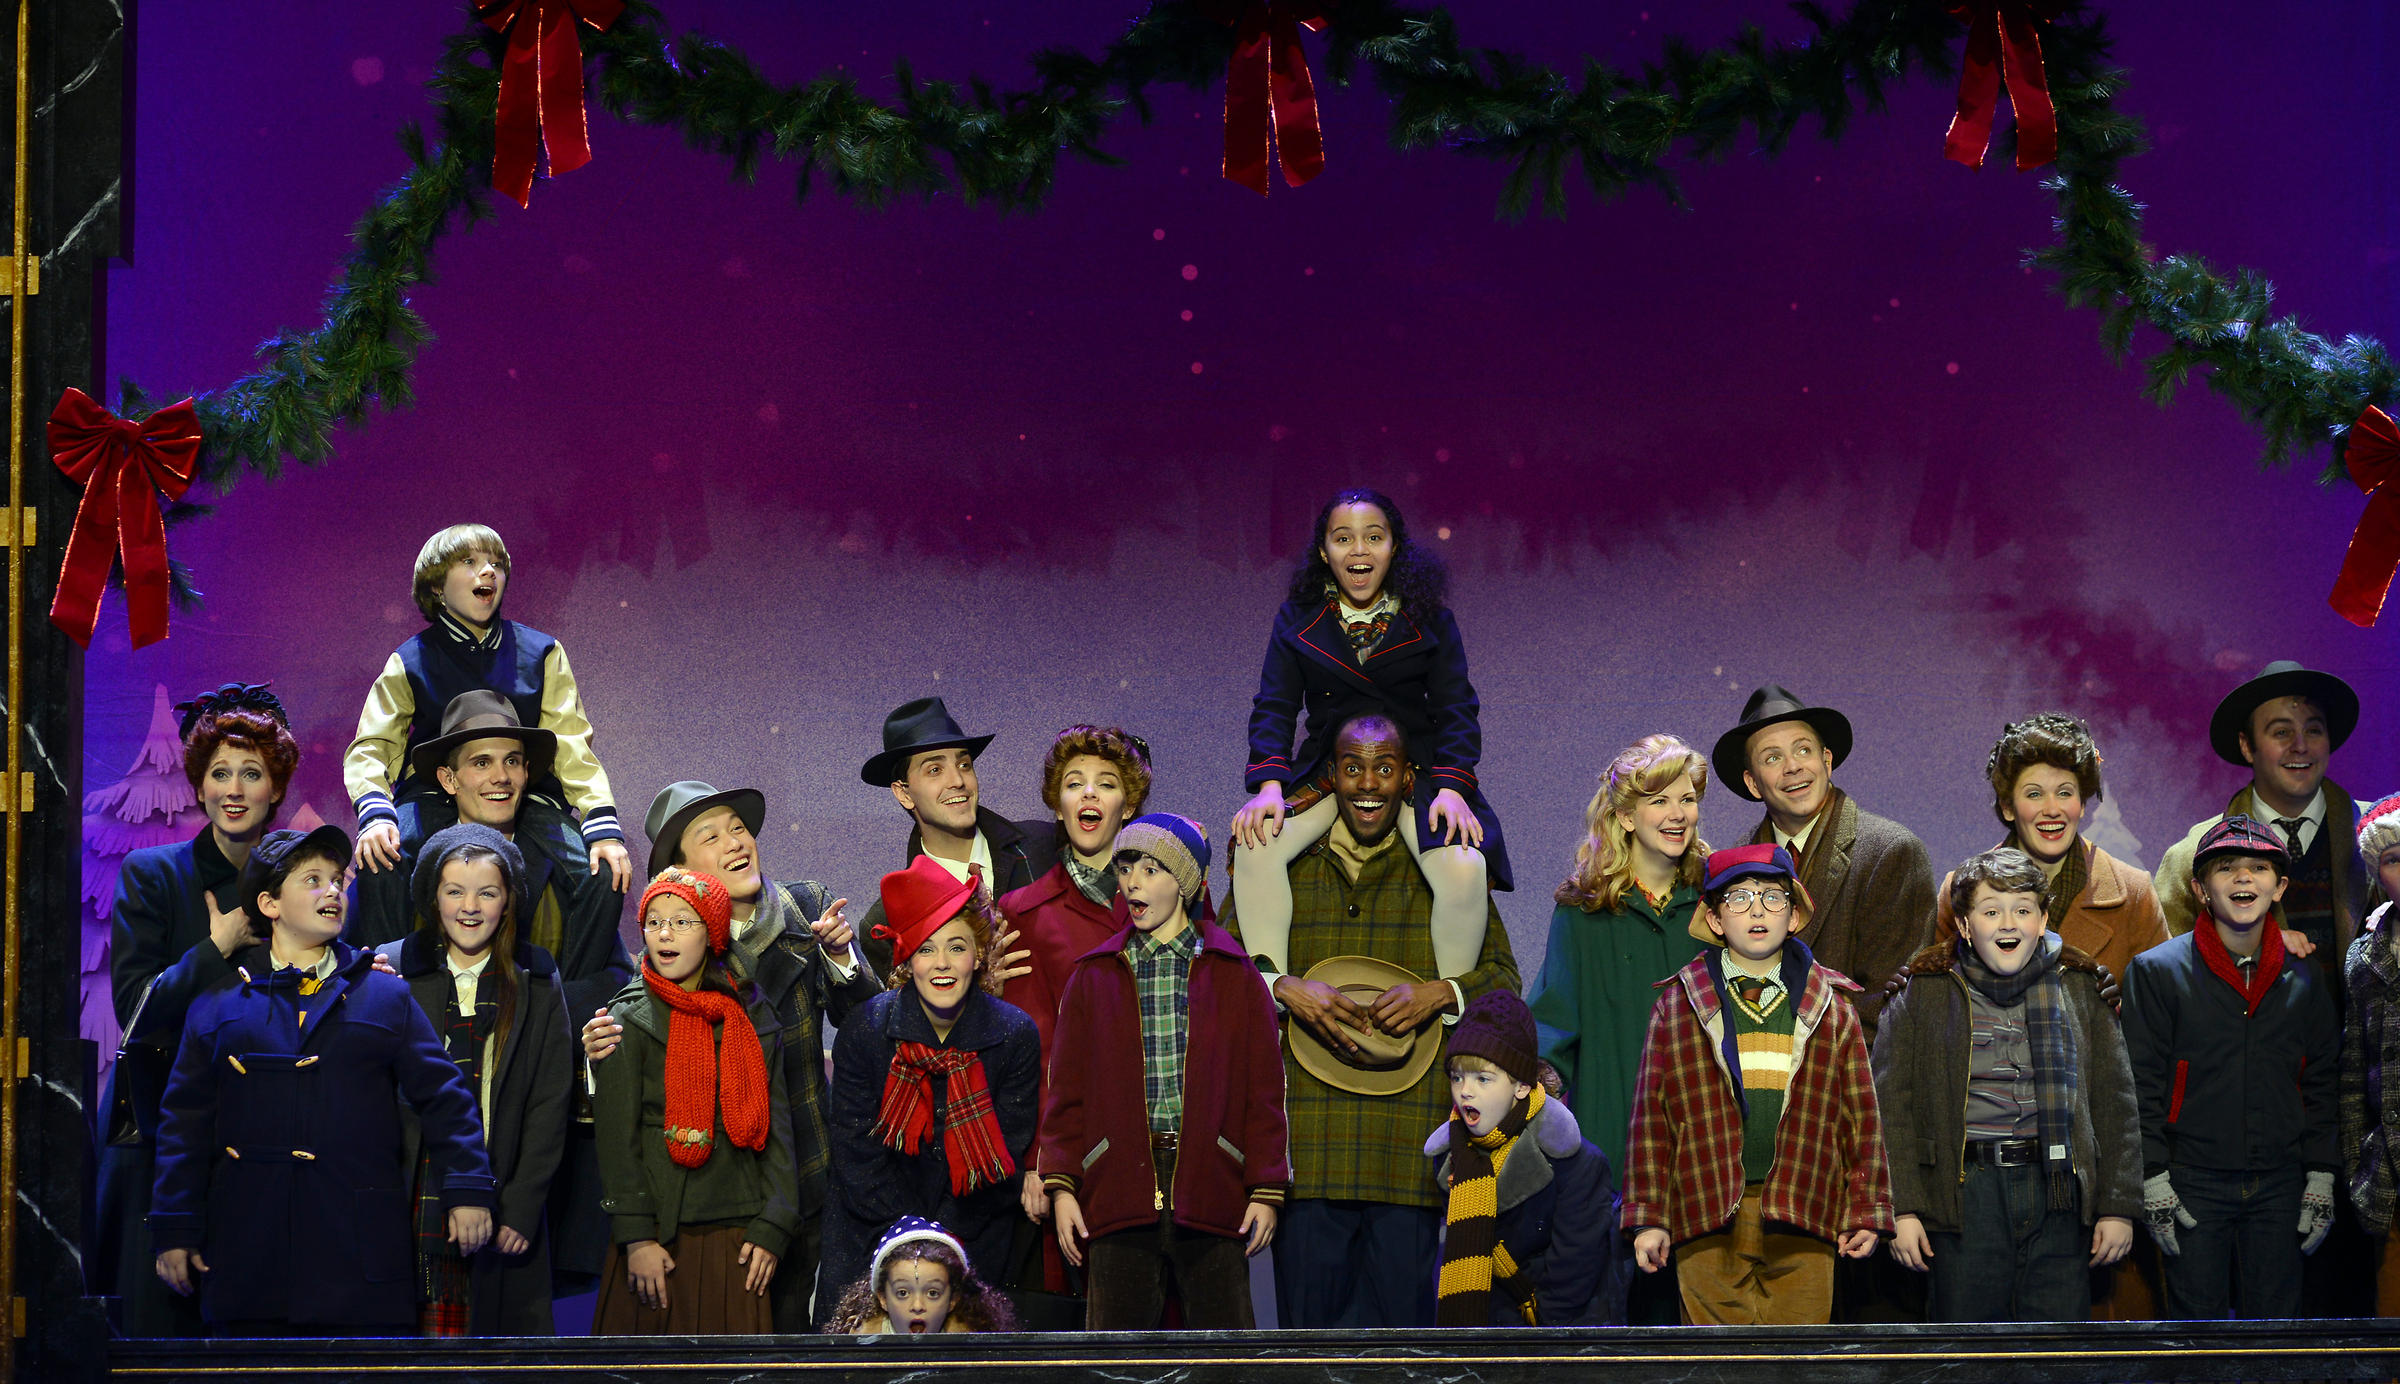 A Christmas Story The Musical.St Louis Teen Part Of A Christmas Story St Louis